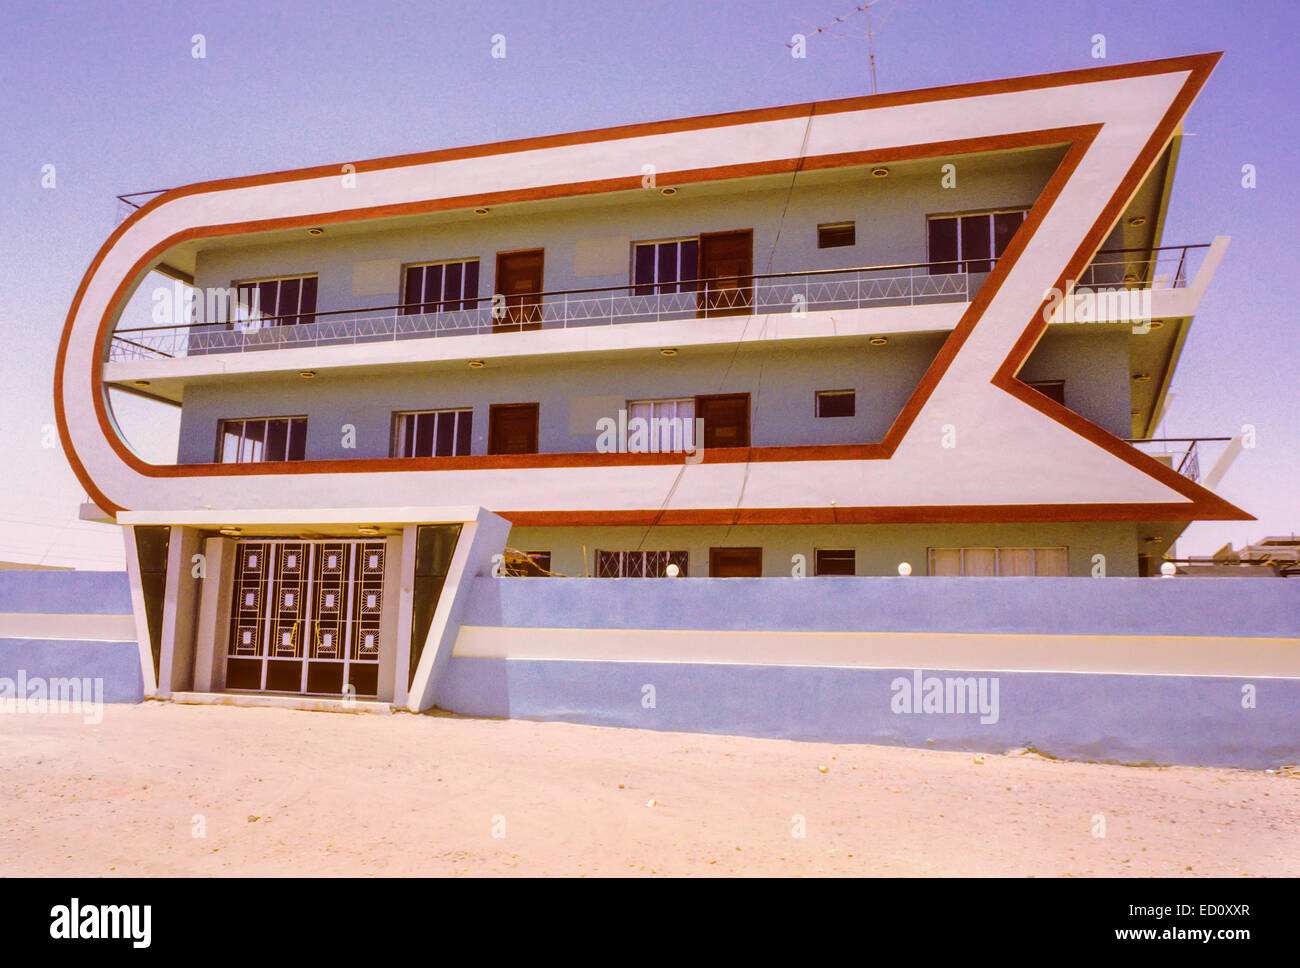 Kuwait fahaheel august 1968 private house modern for Architecture 1960